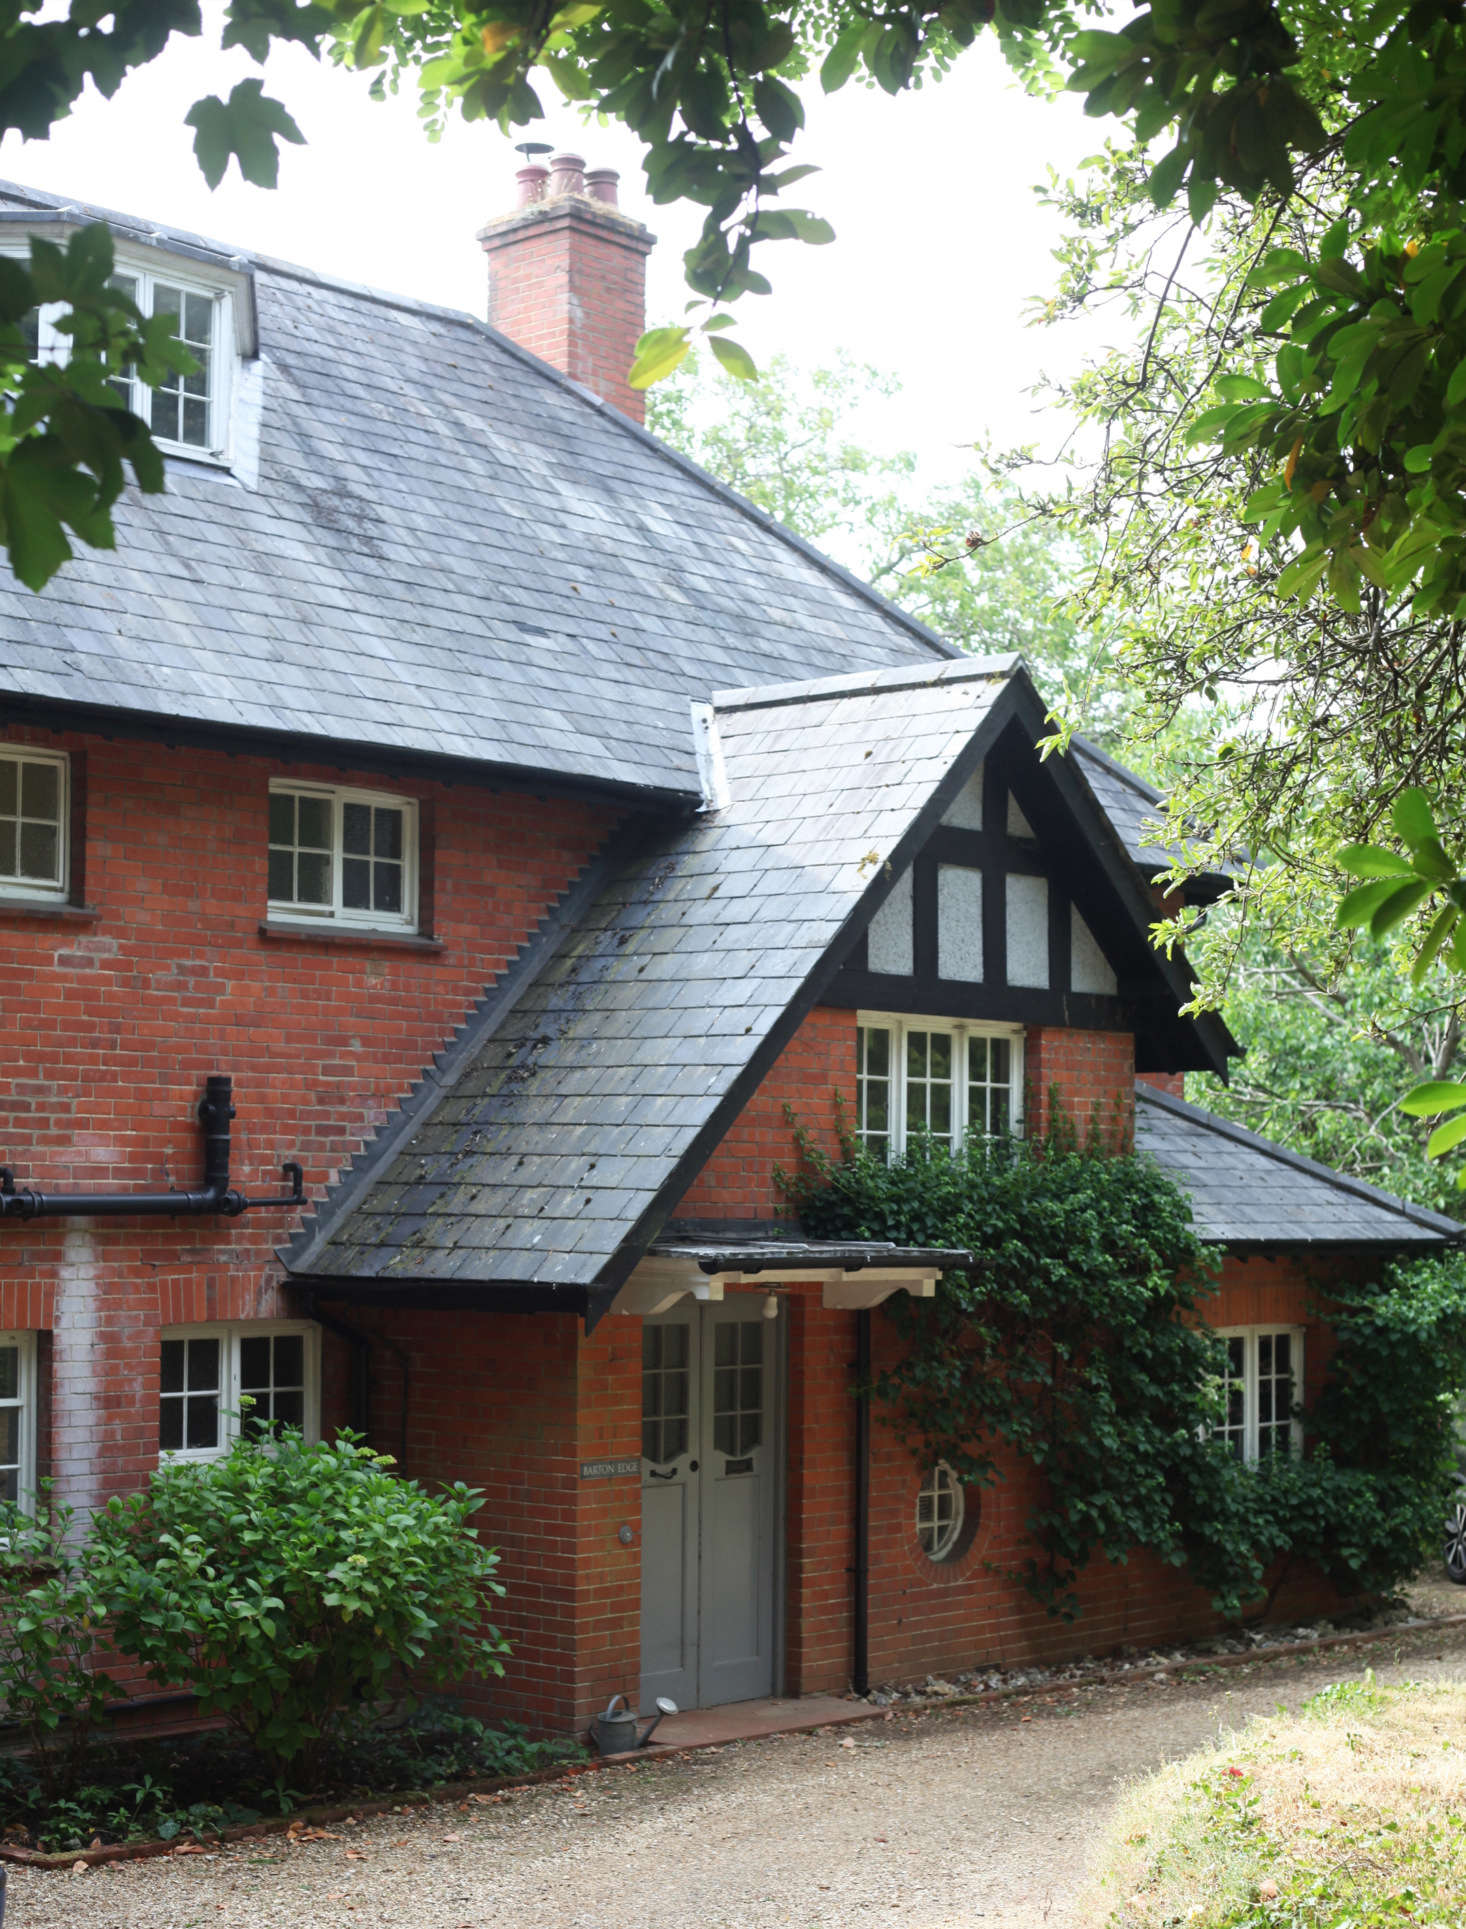 Victoria and Phil and their three children moved to Barton Edge almost  years ago. Built in the Arts and Crafts style, it&#8